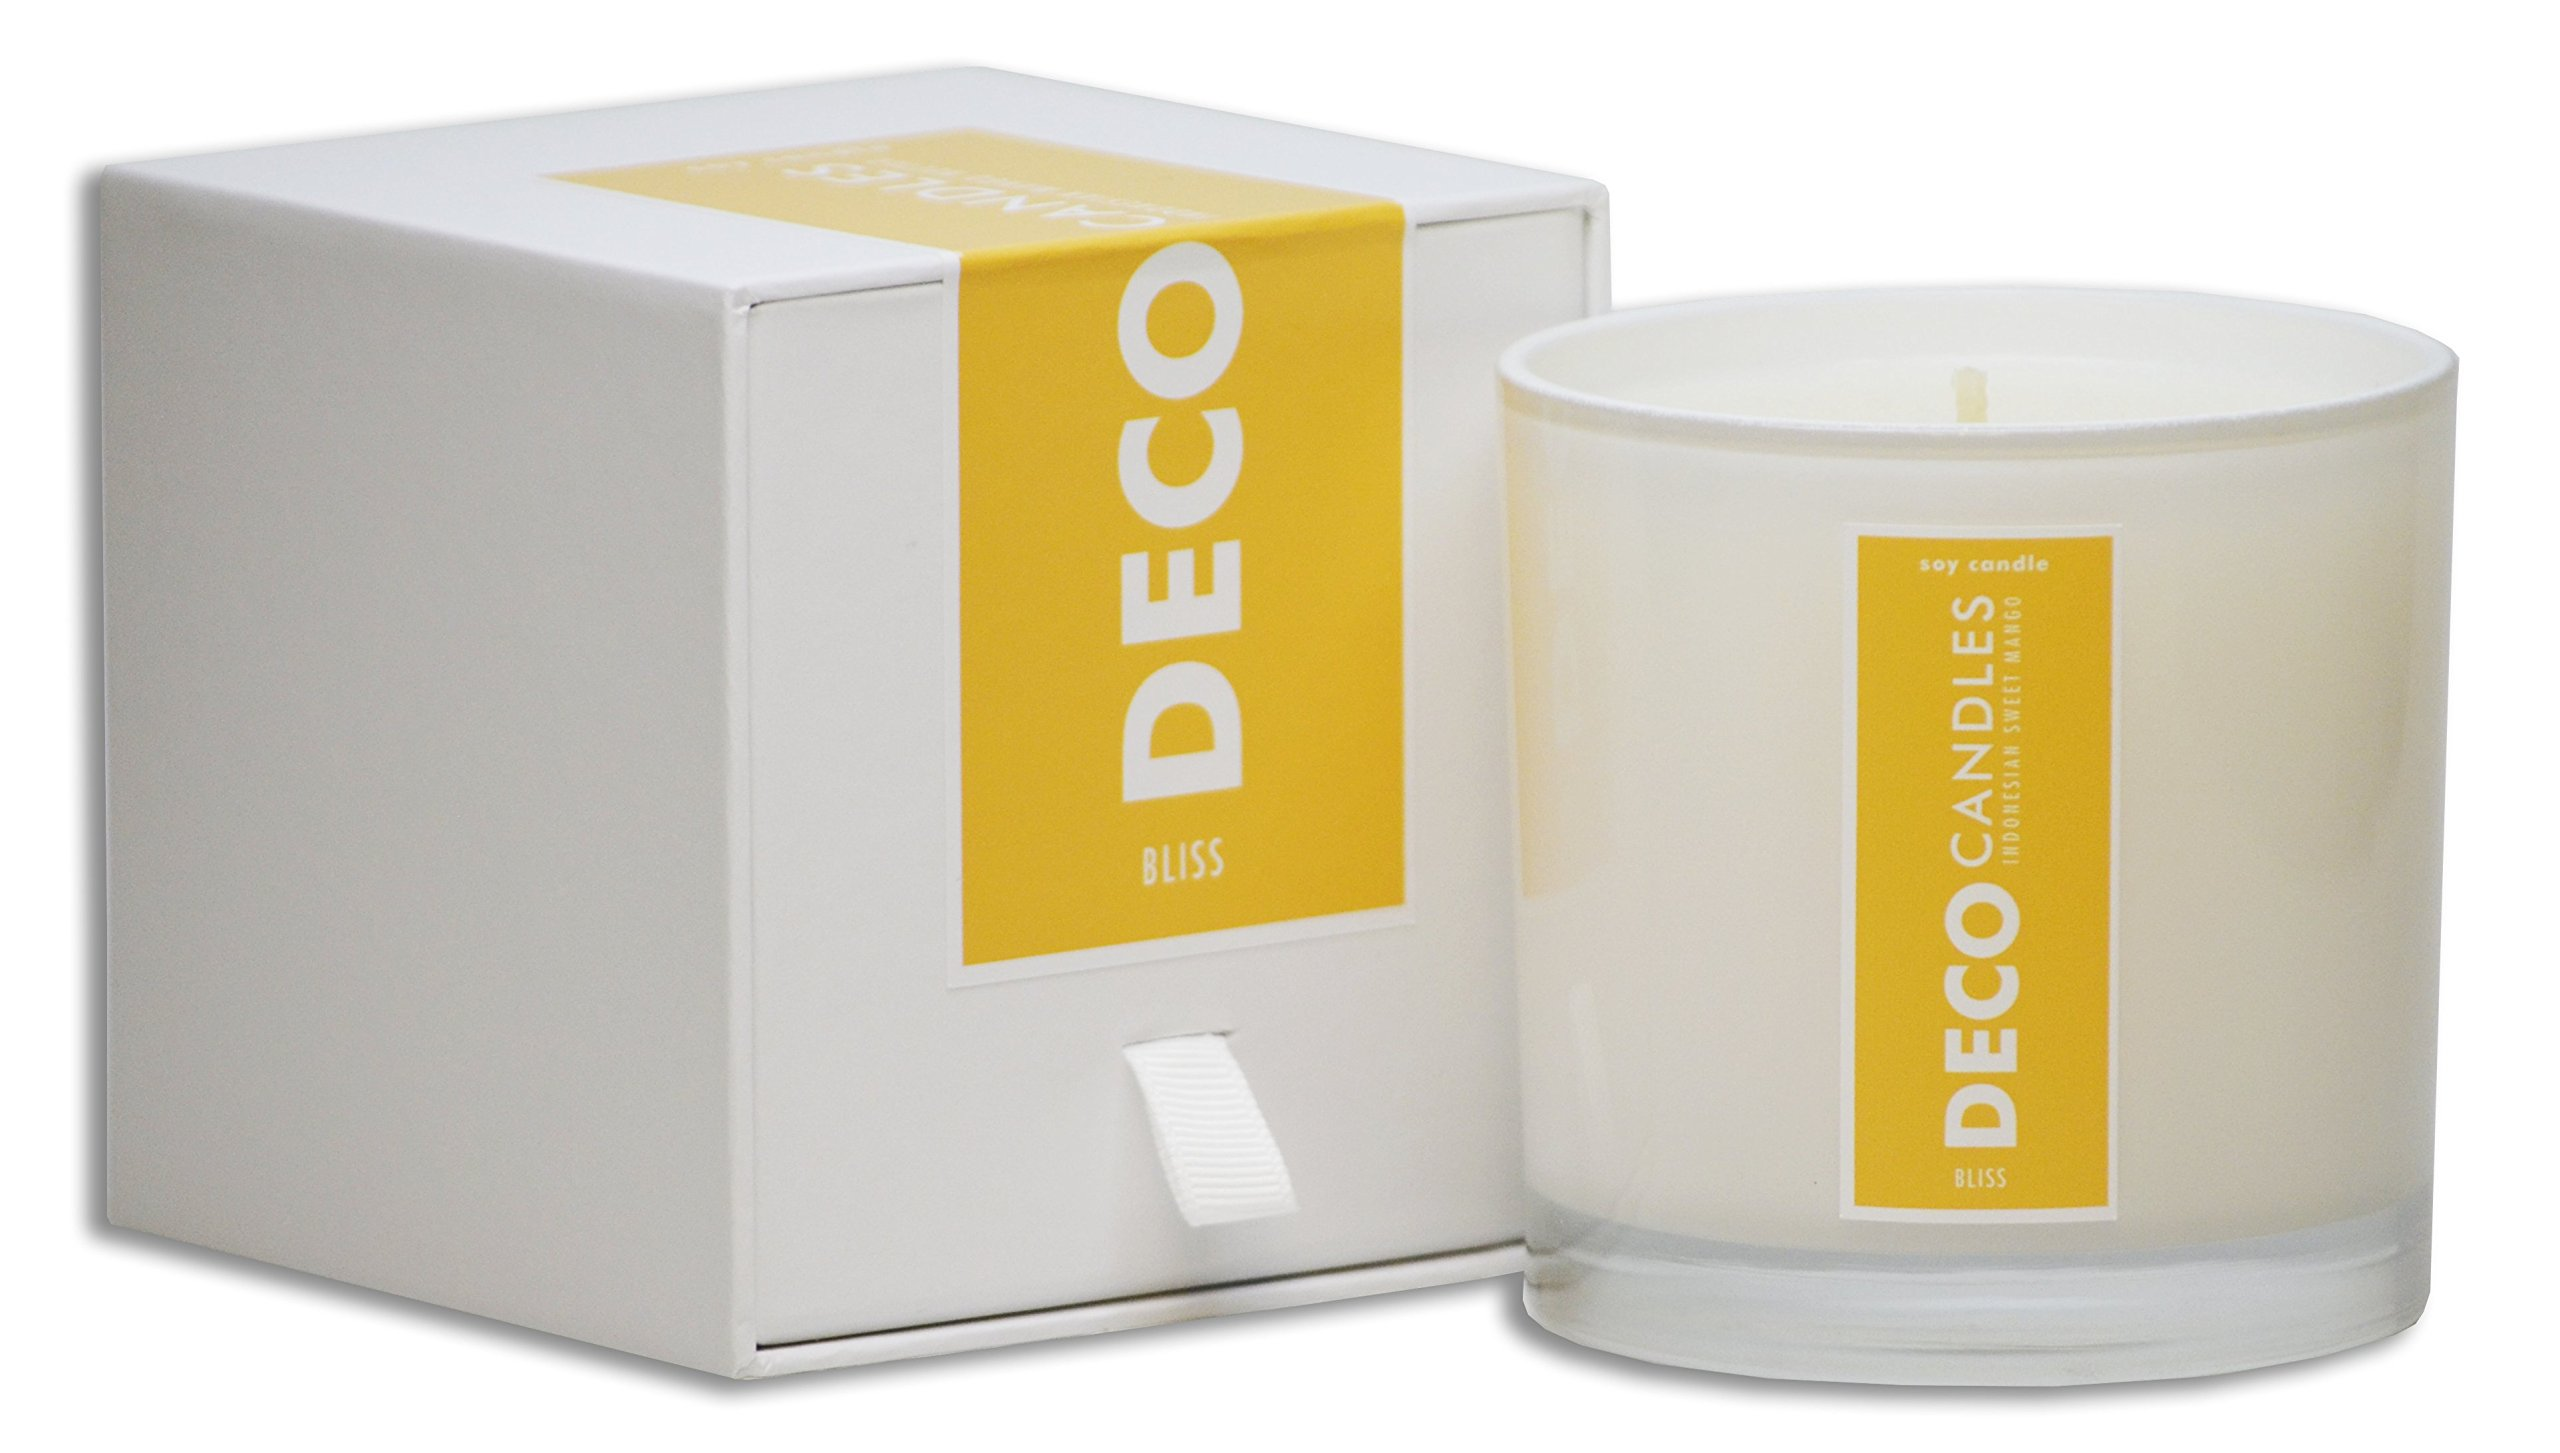 DecoCandleS Bliss- Sweet Mango | Highly Scented | Long Lasting Soy Candle | Hand Poured in the USA | Signature Scent for The Spa at The Conrad Miami, FL | 9 Oz.